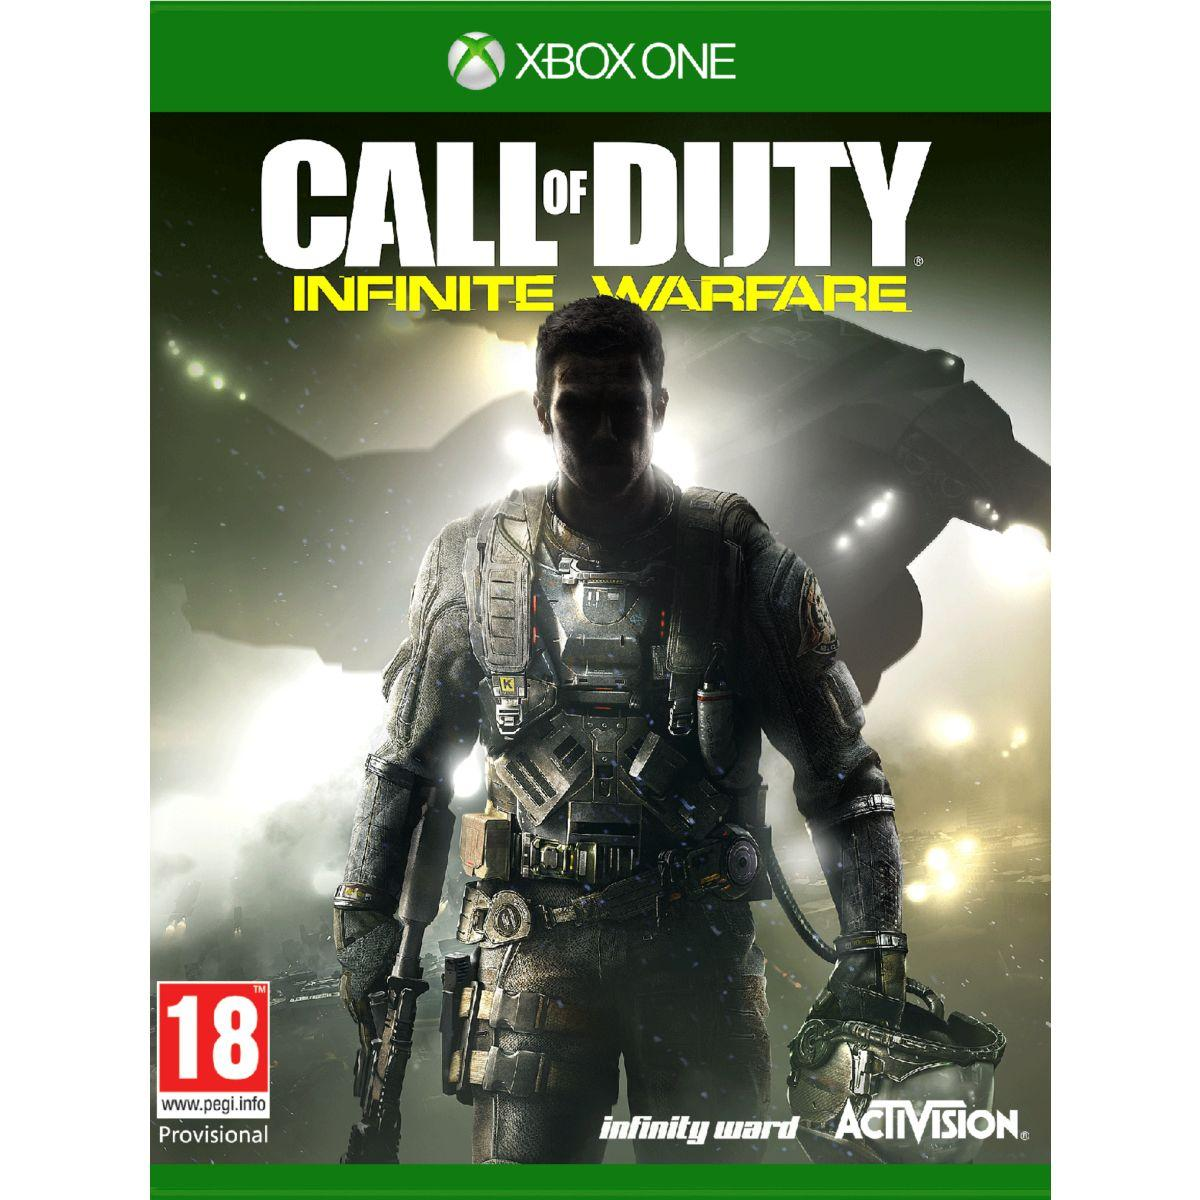 Jeu xbox one activision call of duty infinite warfare - livrai...